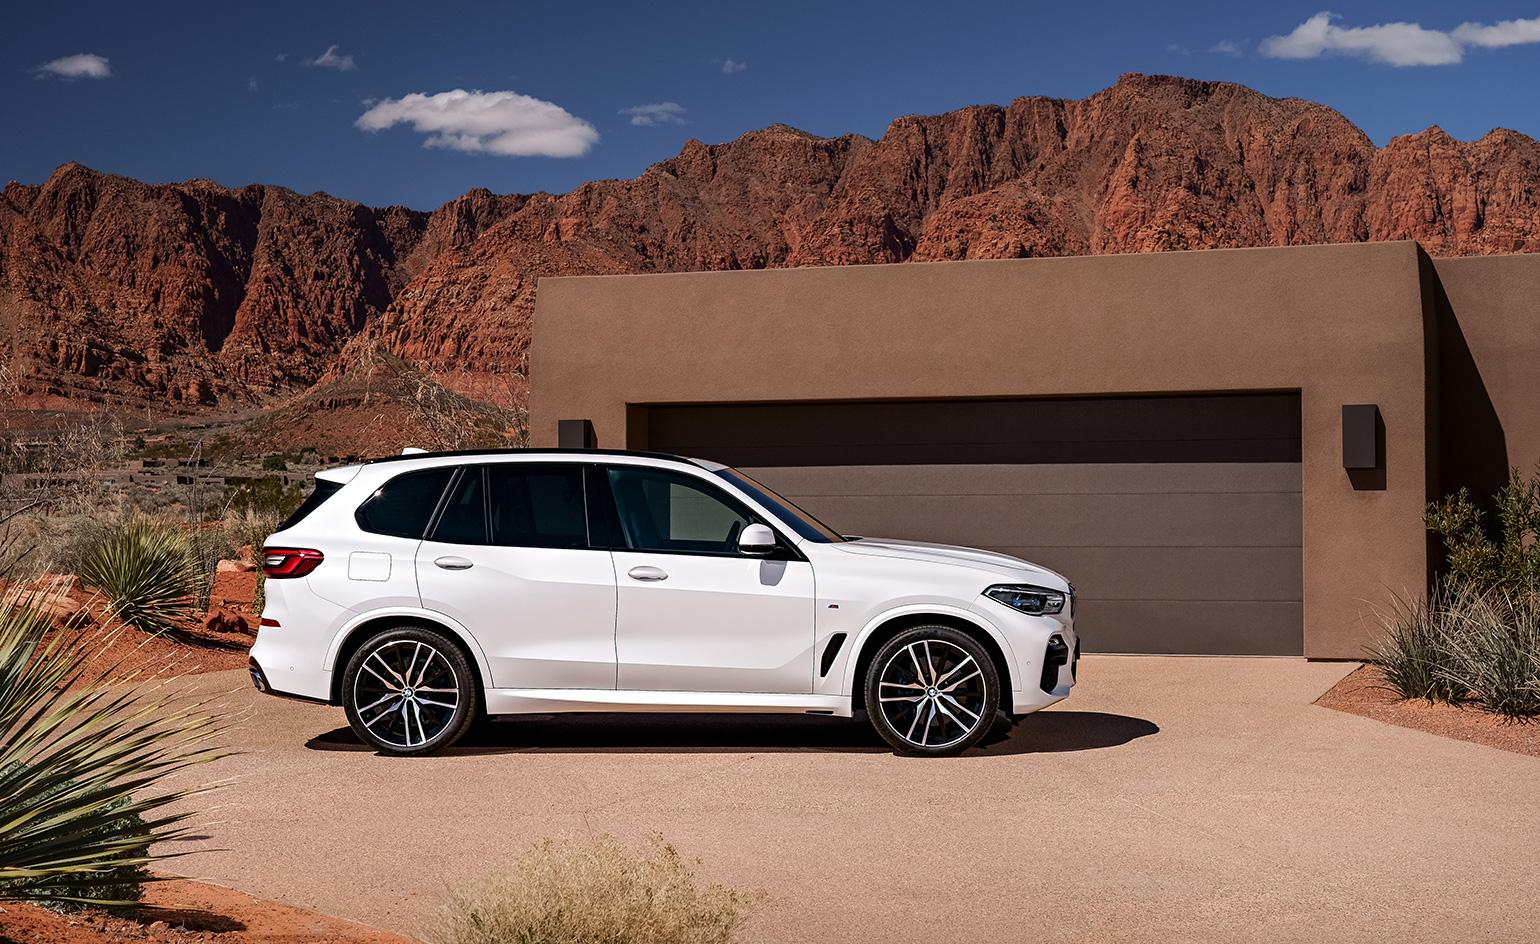 The tech-driven BMW X5 demonstrates diesel in its best light